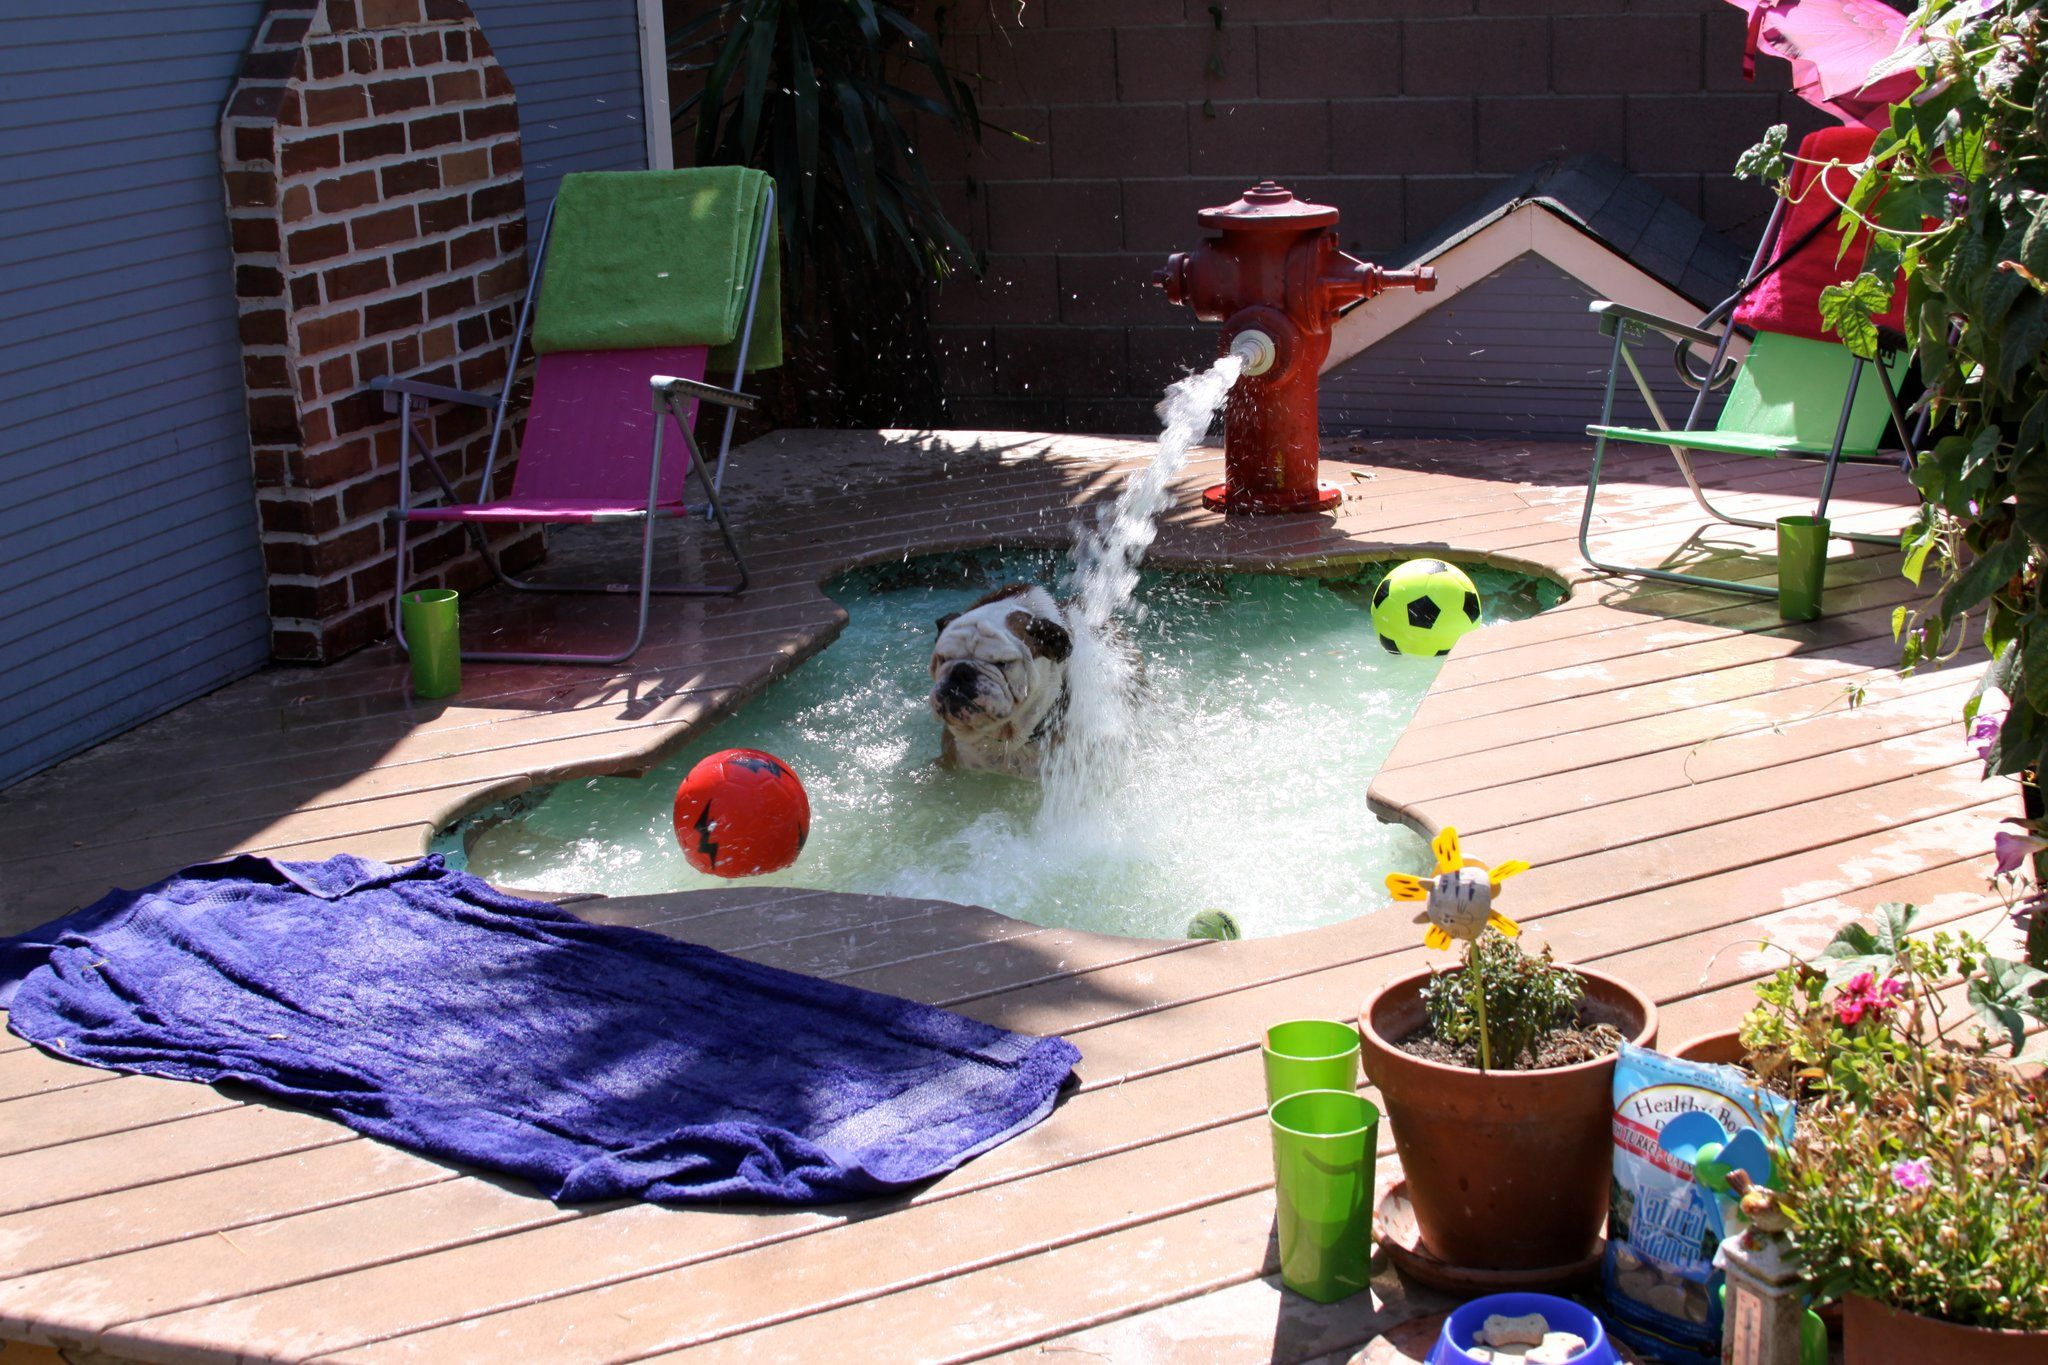 Tillman S Got A Dog Bone Shaped Pool Love The Fire Hydrant Link